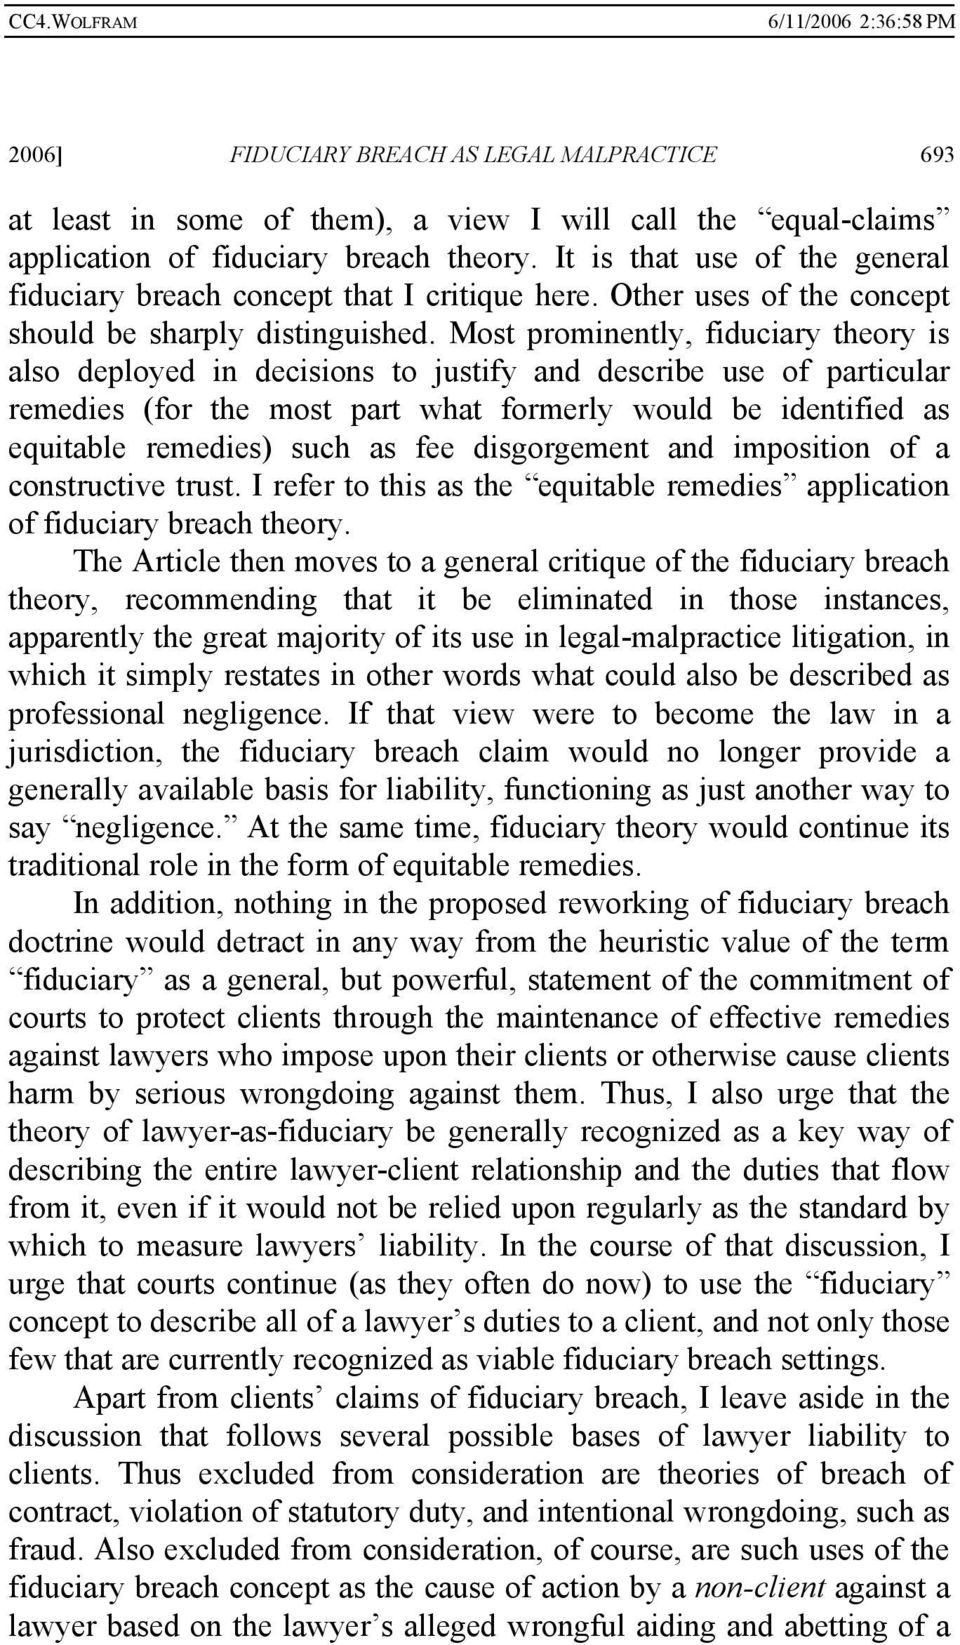 Most prominently, fiduciary theory is also deployed in decisions to justify and describe use of particular remedies (for the most part what formerly would be identified as equitable remedies) such as